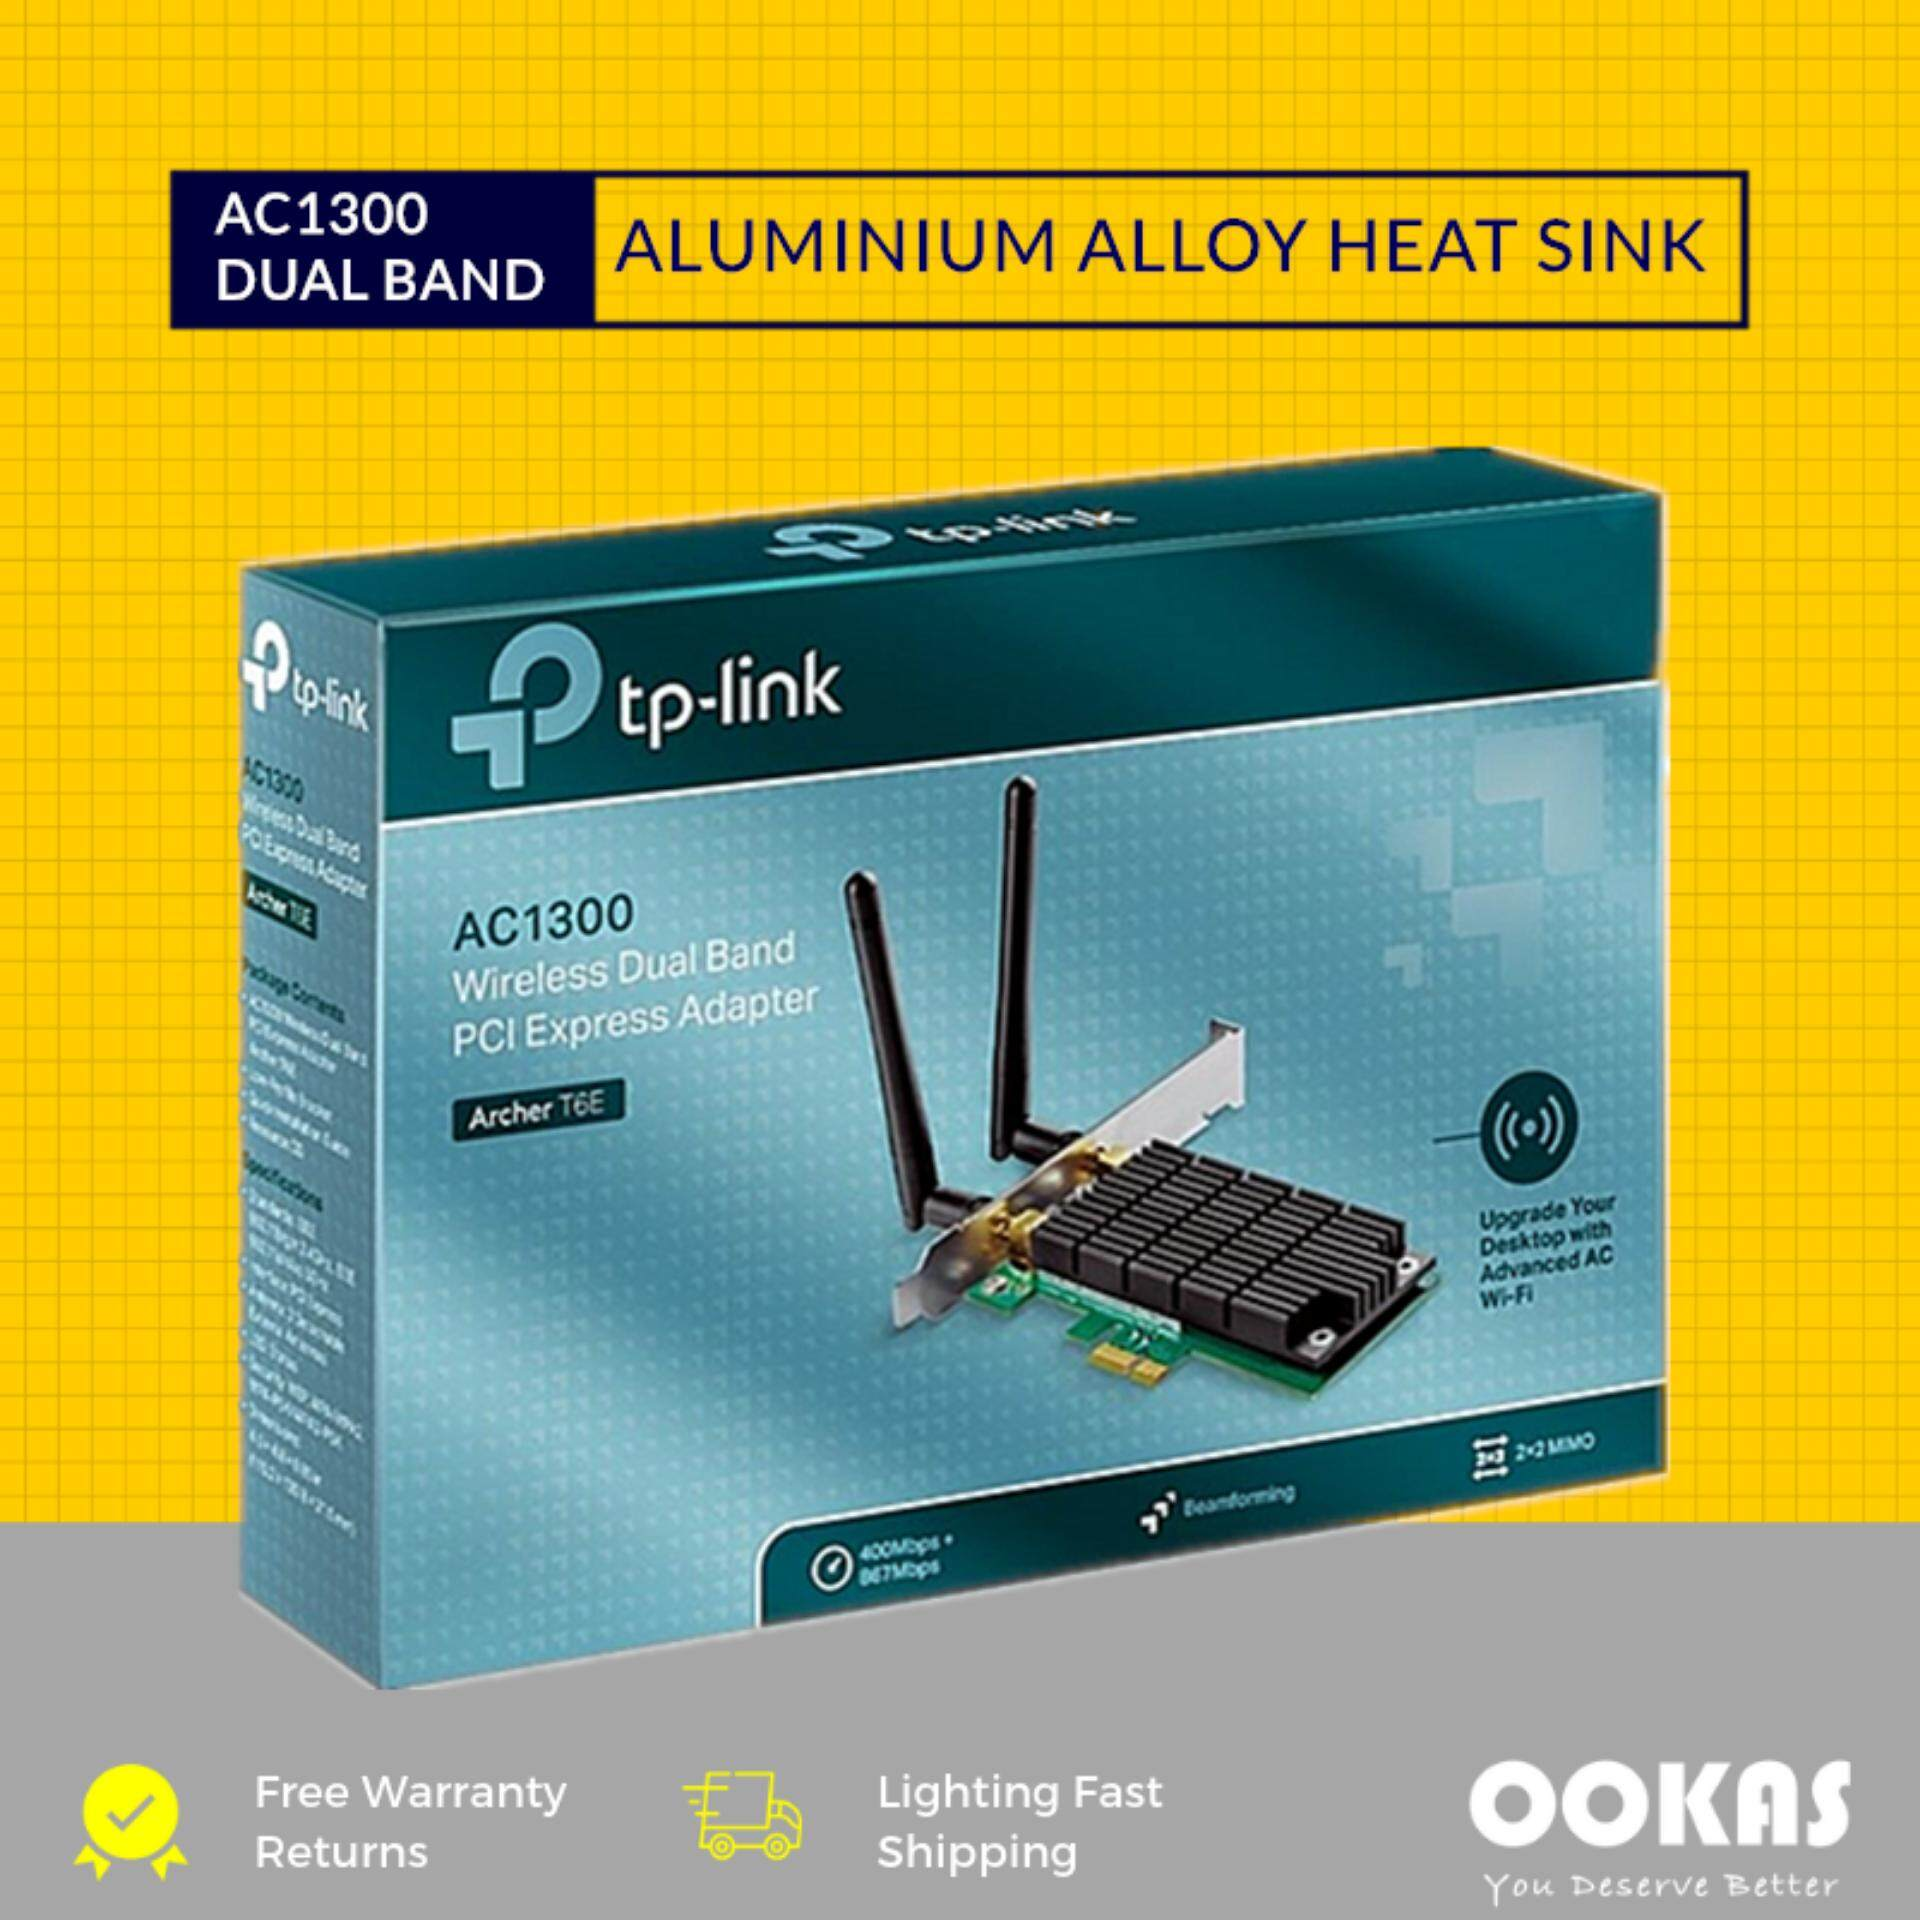 Tp-Link Ac1300 Wireless Dual Band Pci-E Express Adapter Archer T6e By Ookas.